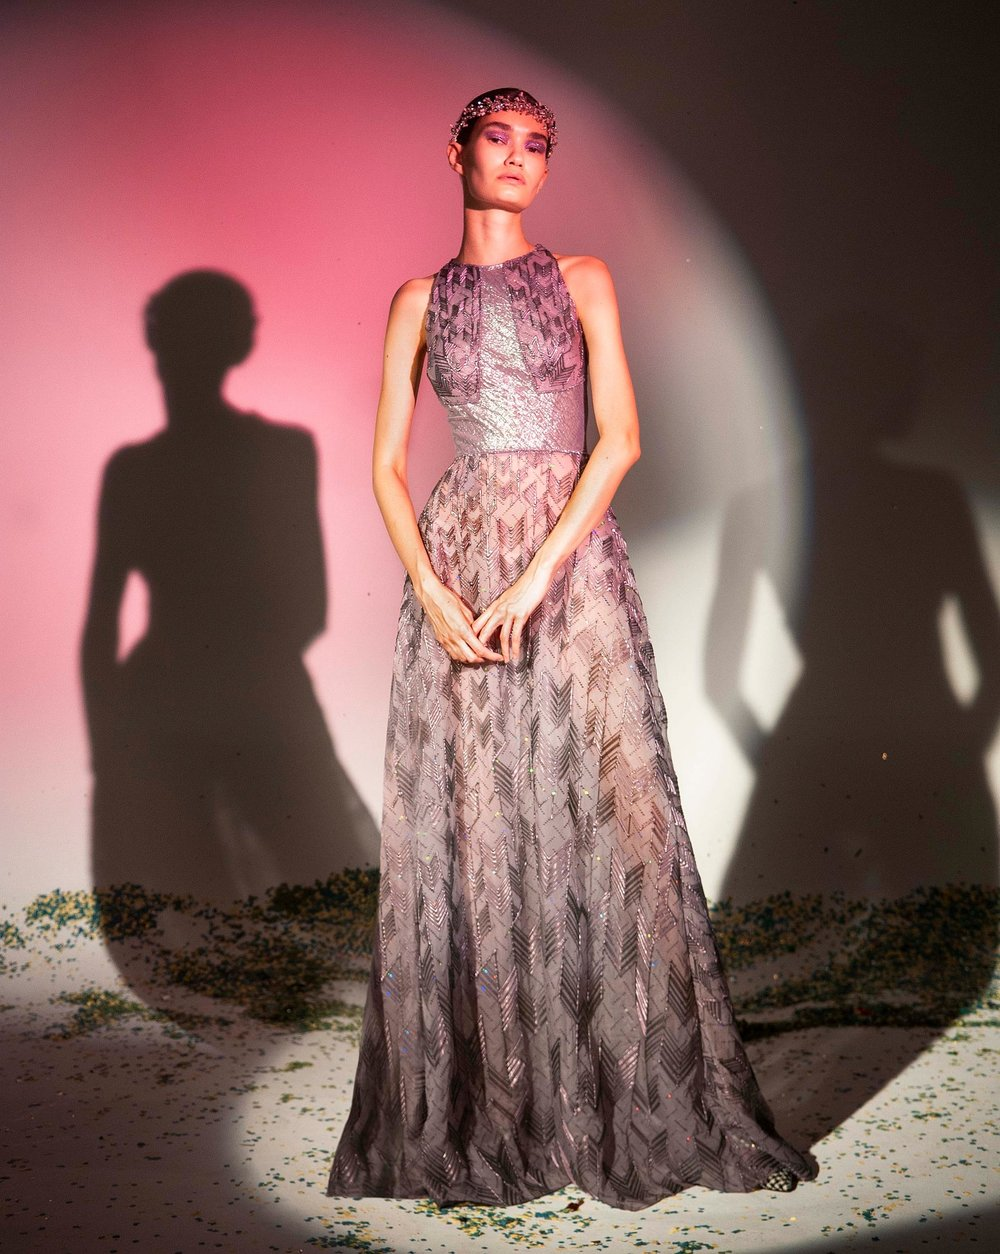 FW19-15 Lilac Silk Chiffon Gown Embellished With Silicone Plaids And Holographic Sequins .jpg